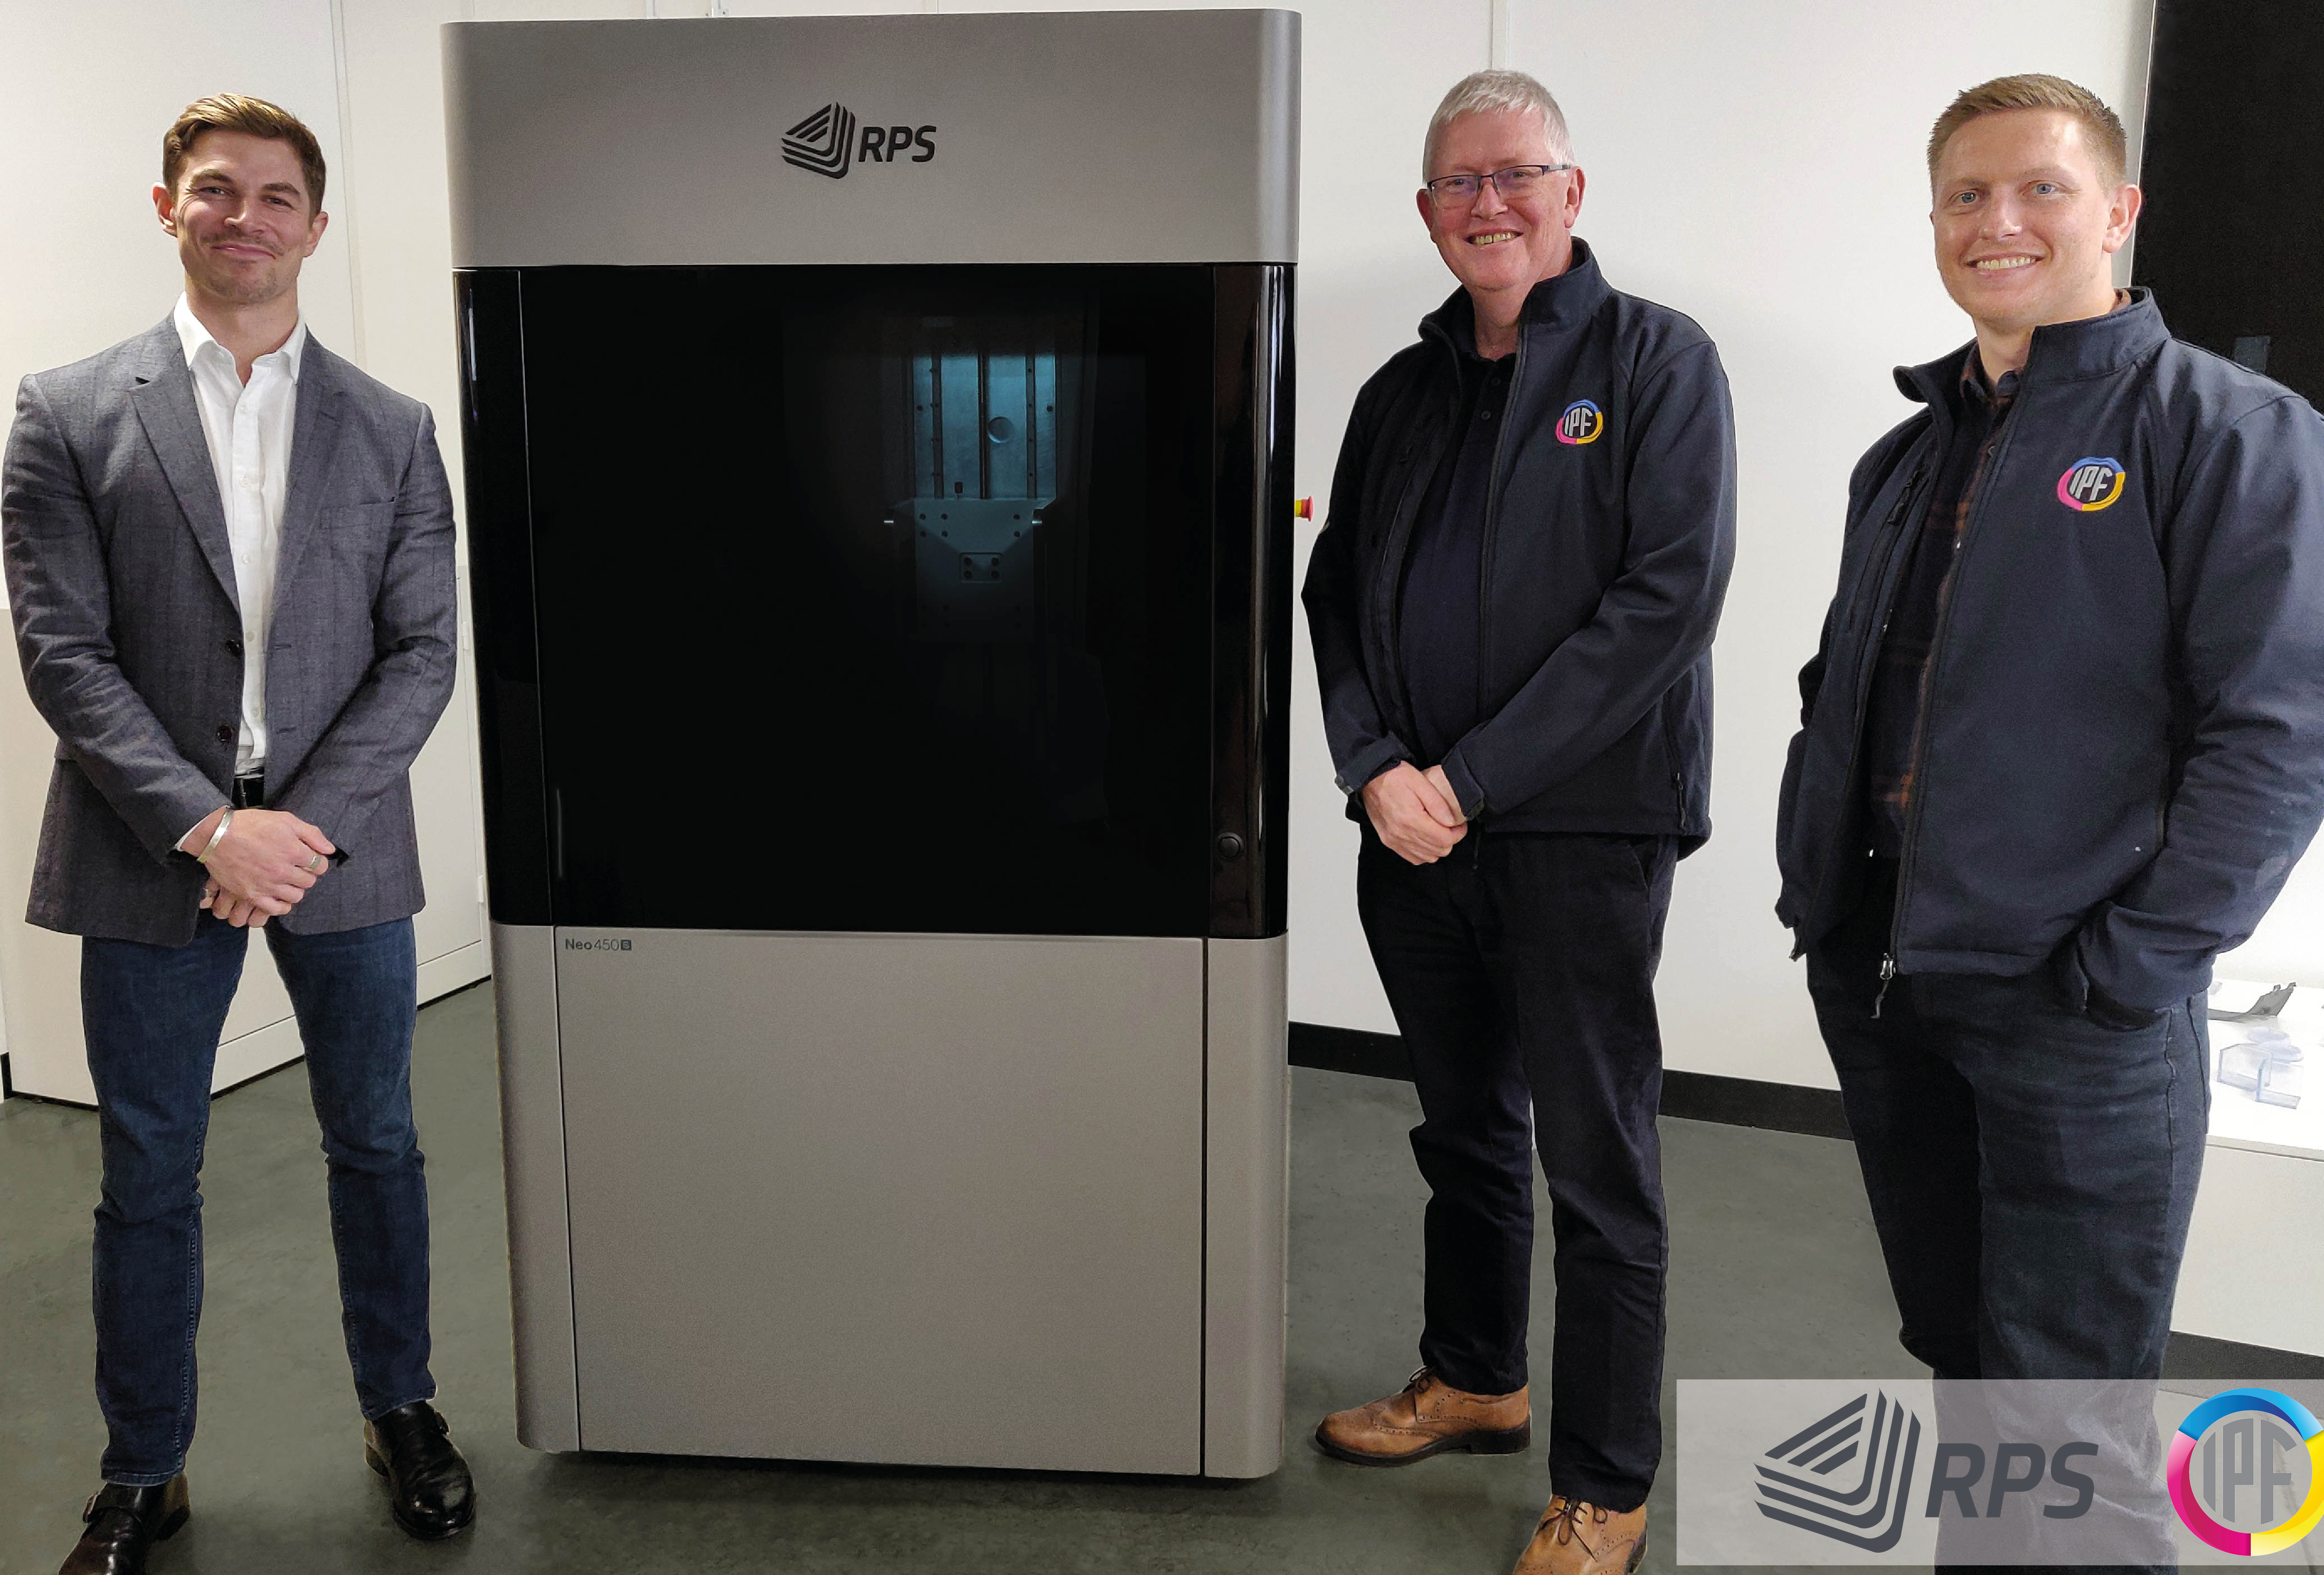 IPF is planning to use its newly-installed RPS System (pictured) to meet client demand within its combined design and prototyping business. Photo via RPS.